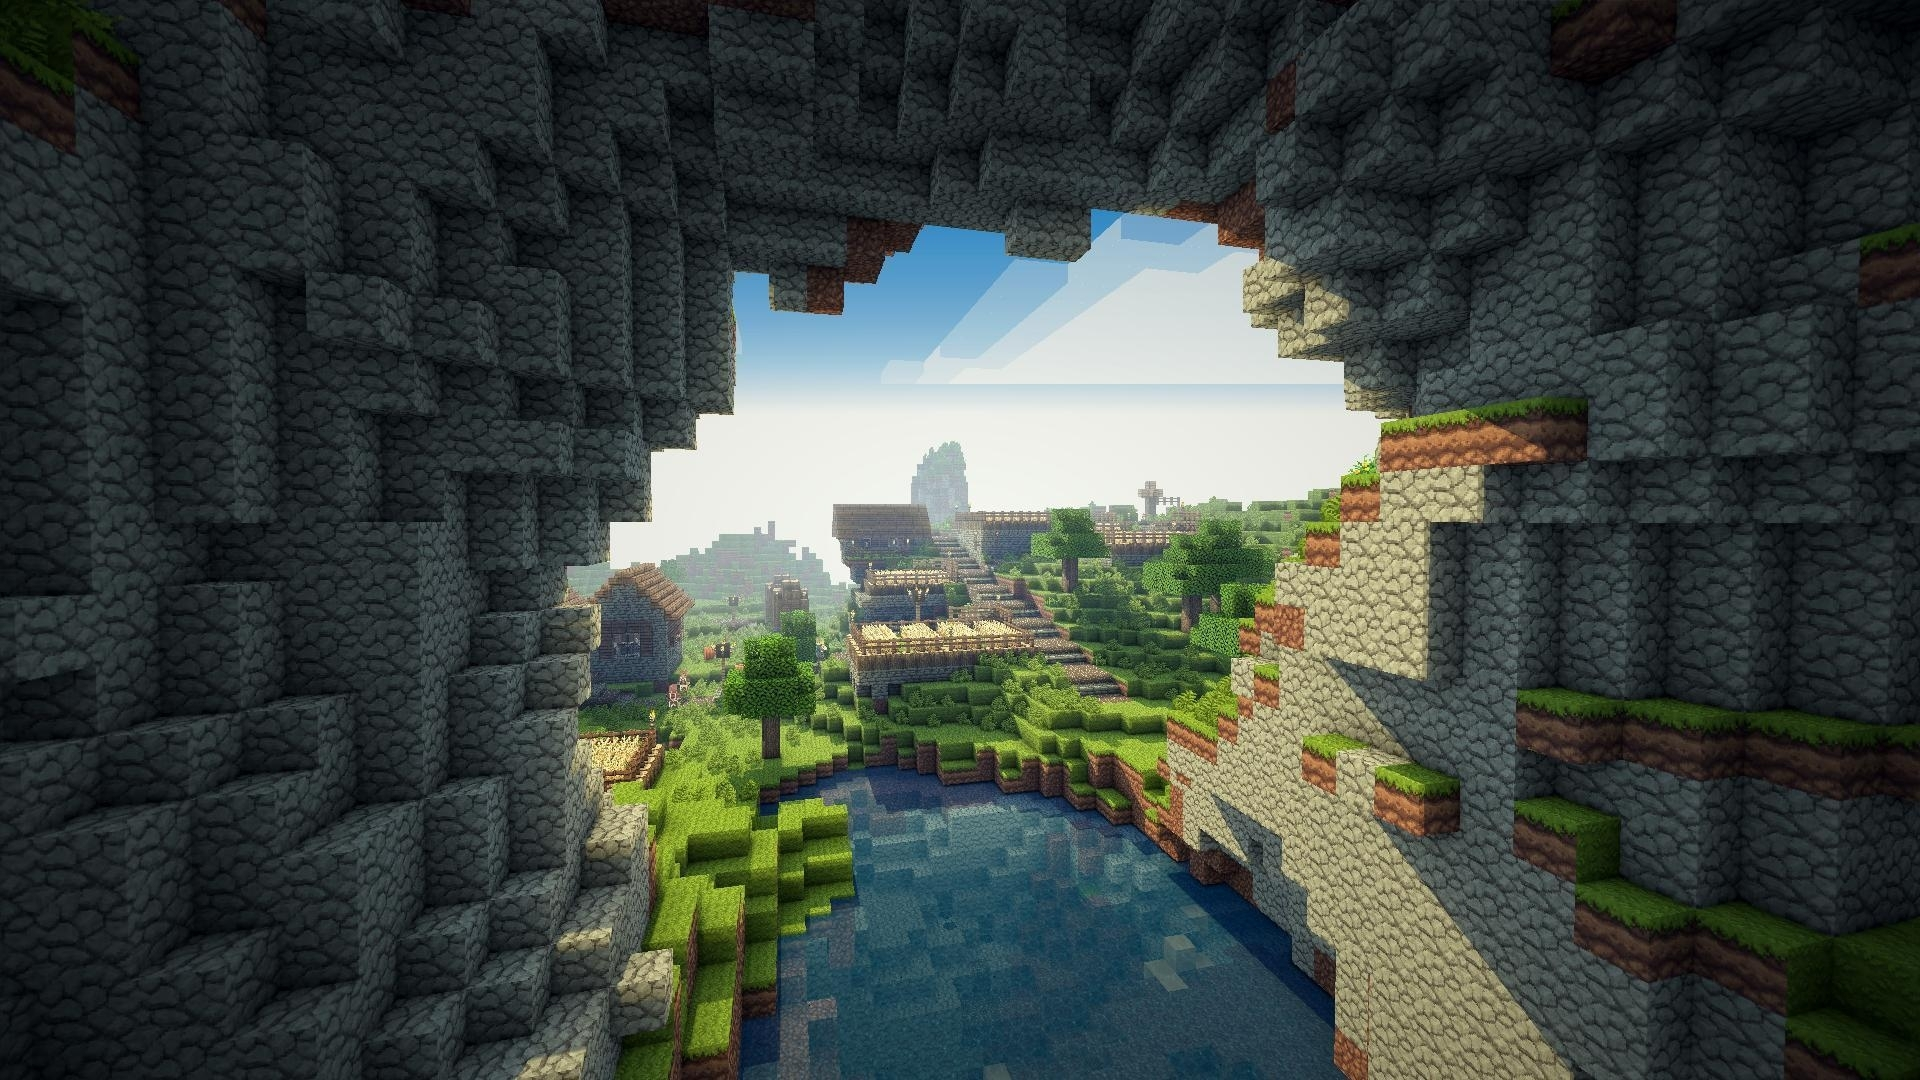 10 Most Popular Hd Minecraft Wallpaper 1920X1080 FULL HD 1920×1080 For PC Background ...